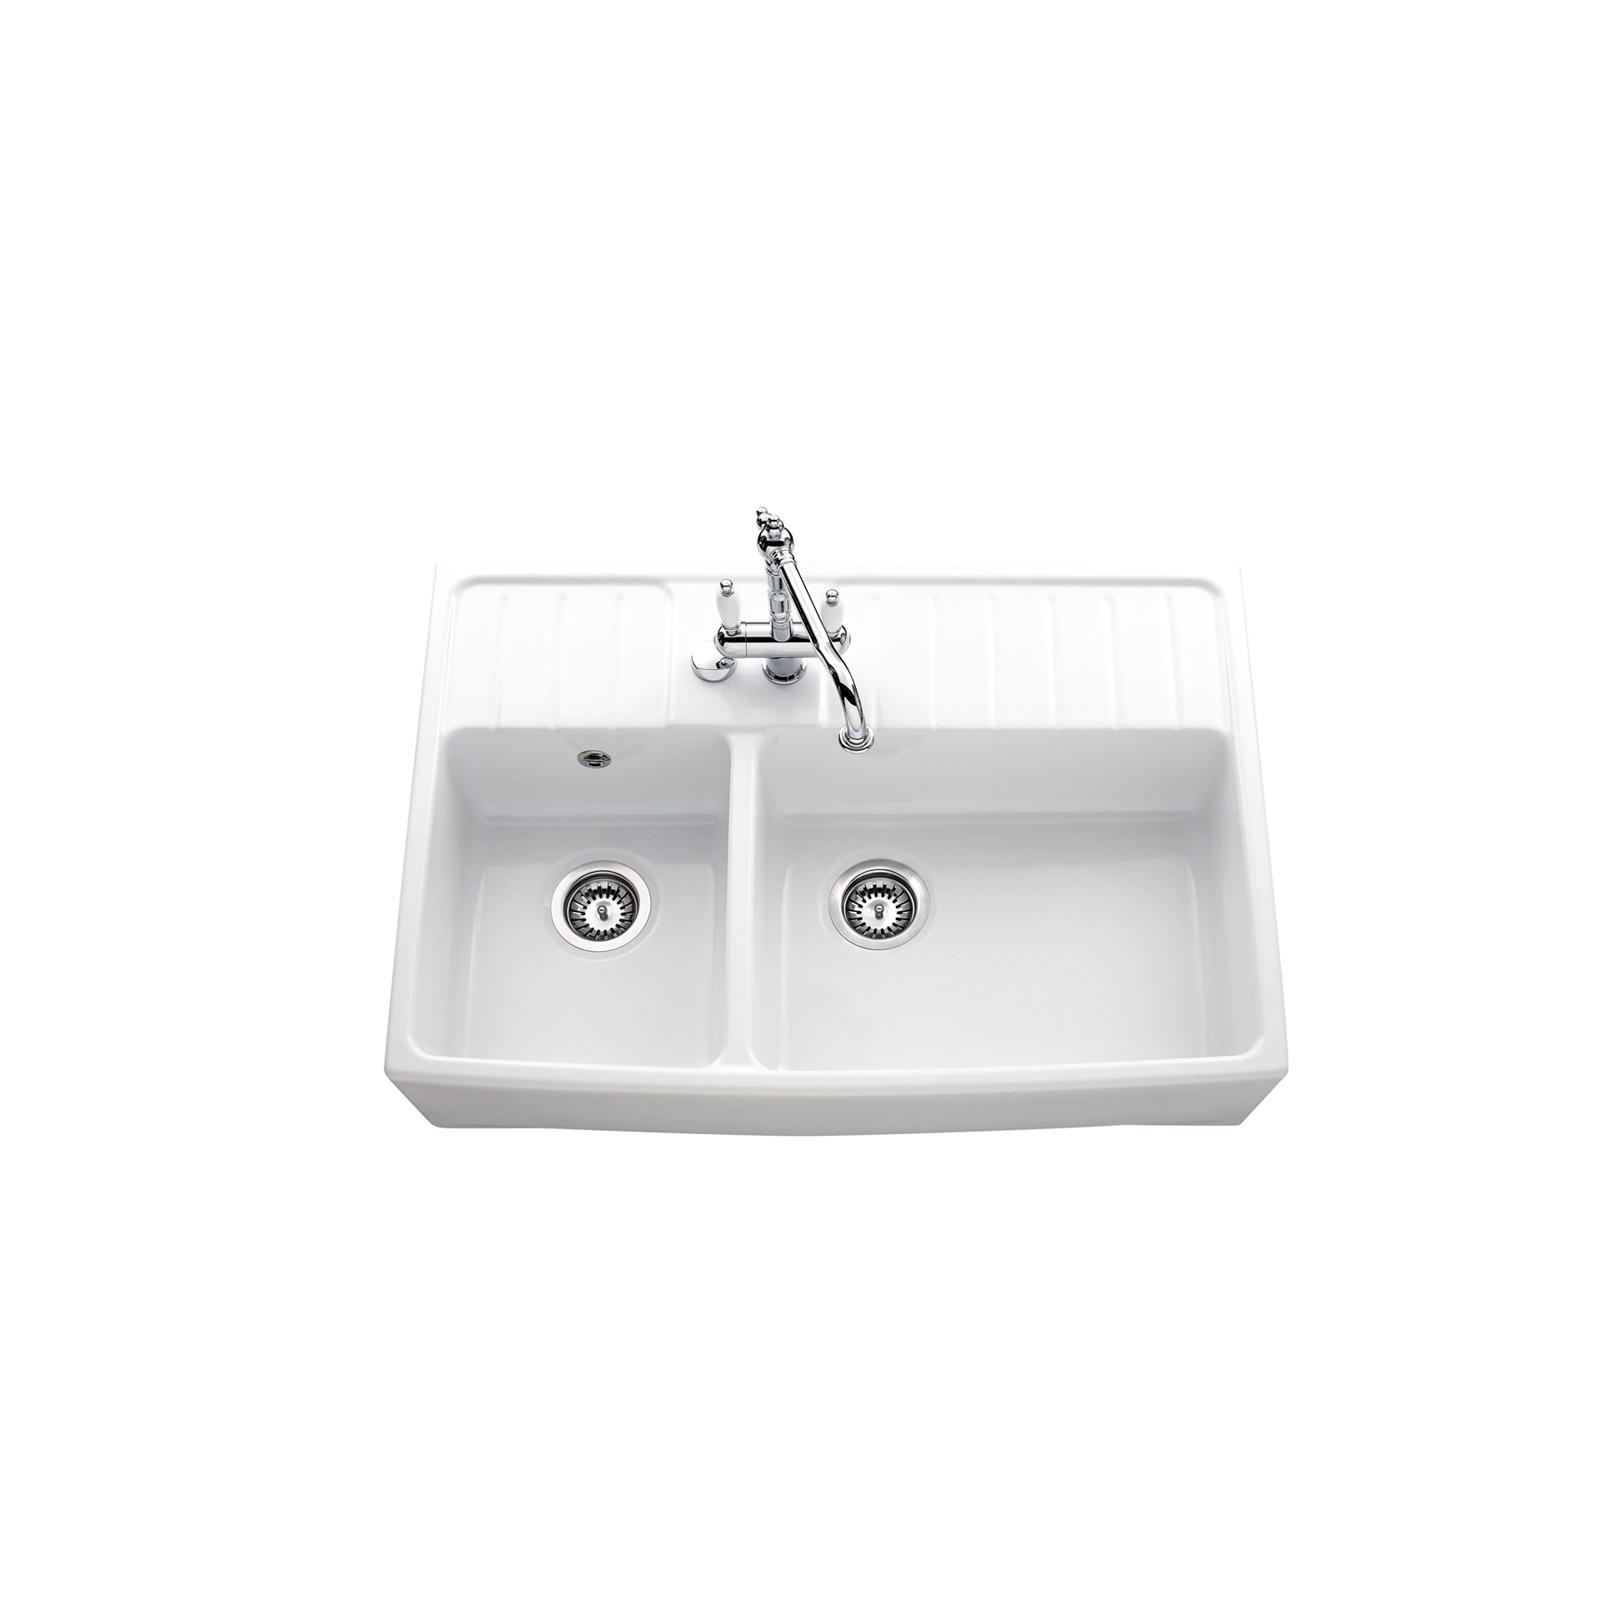 High-quality sink Clotaire III - one and a half bowl, ceramic